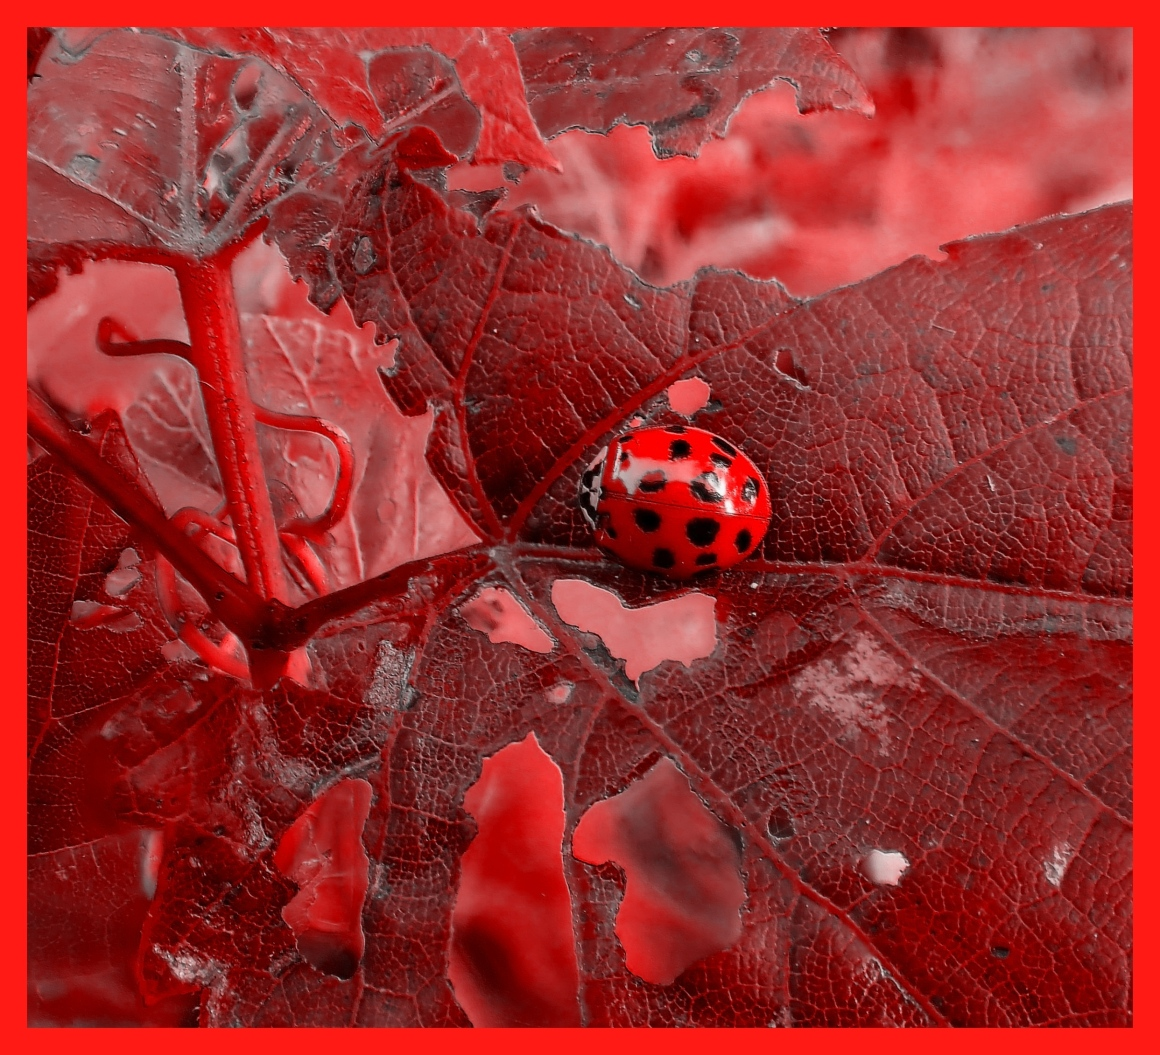 Lady(bug) in Red. Photo by Thomas Peace c. 2015